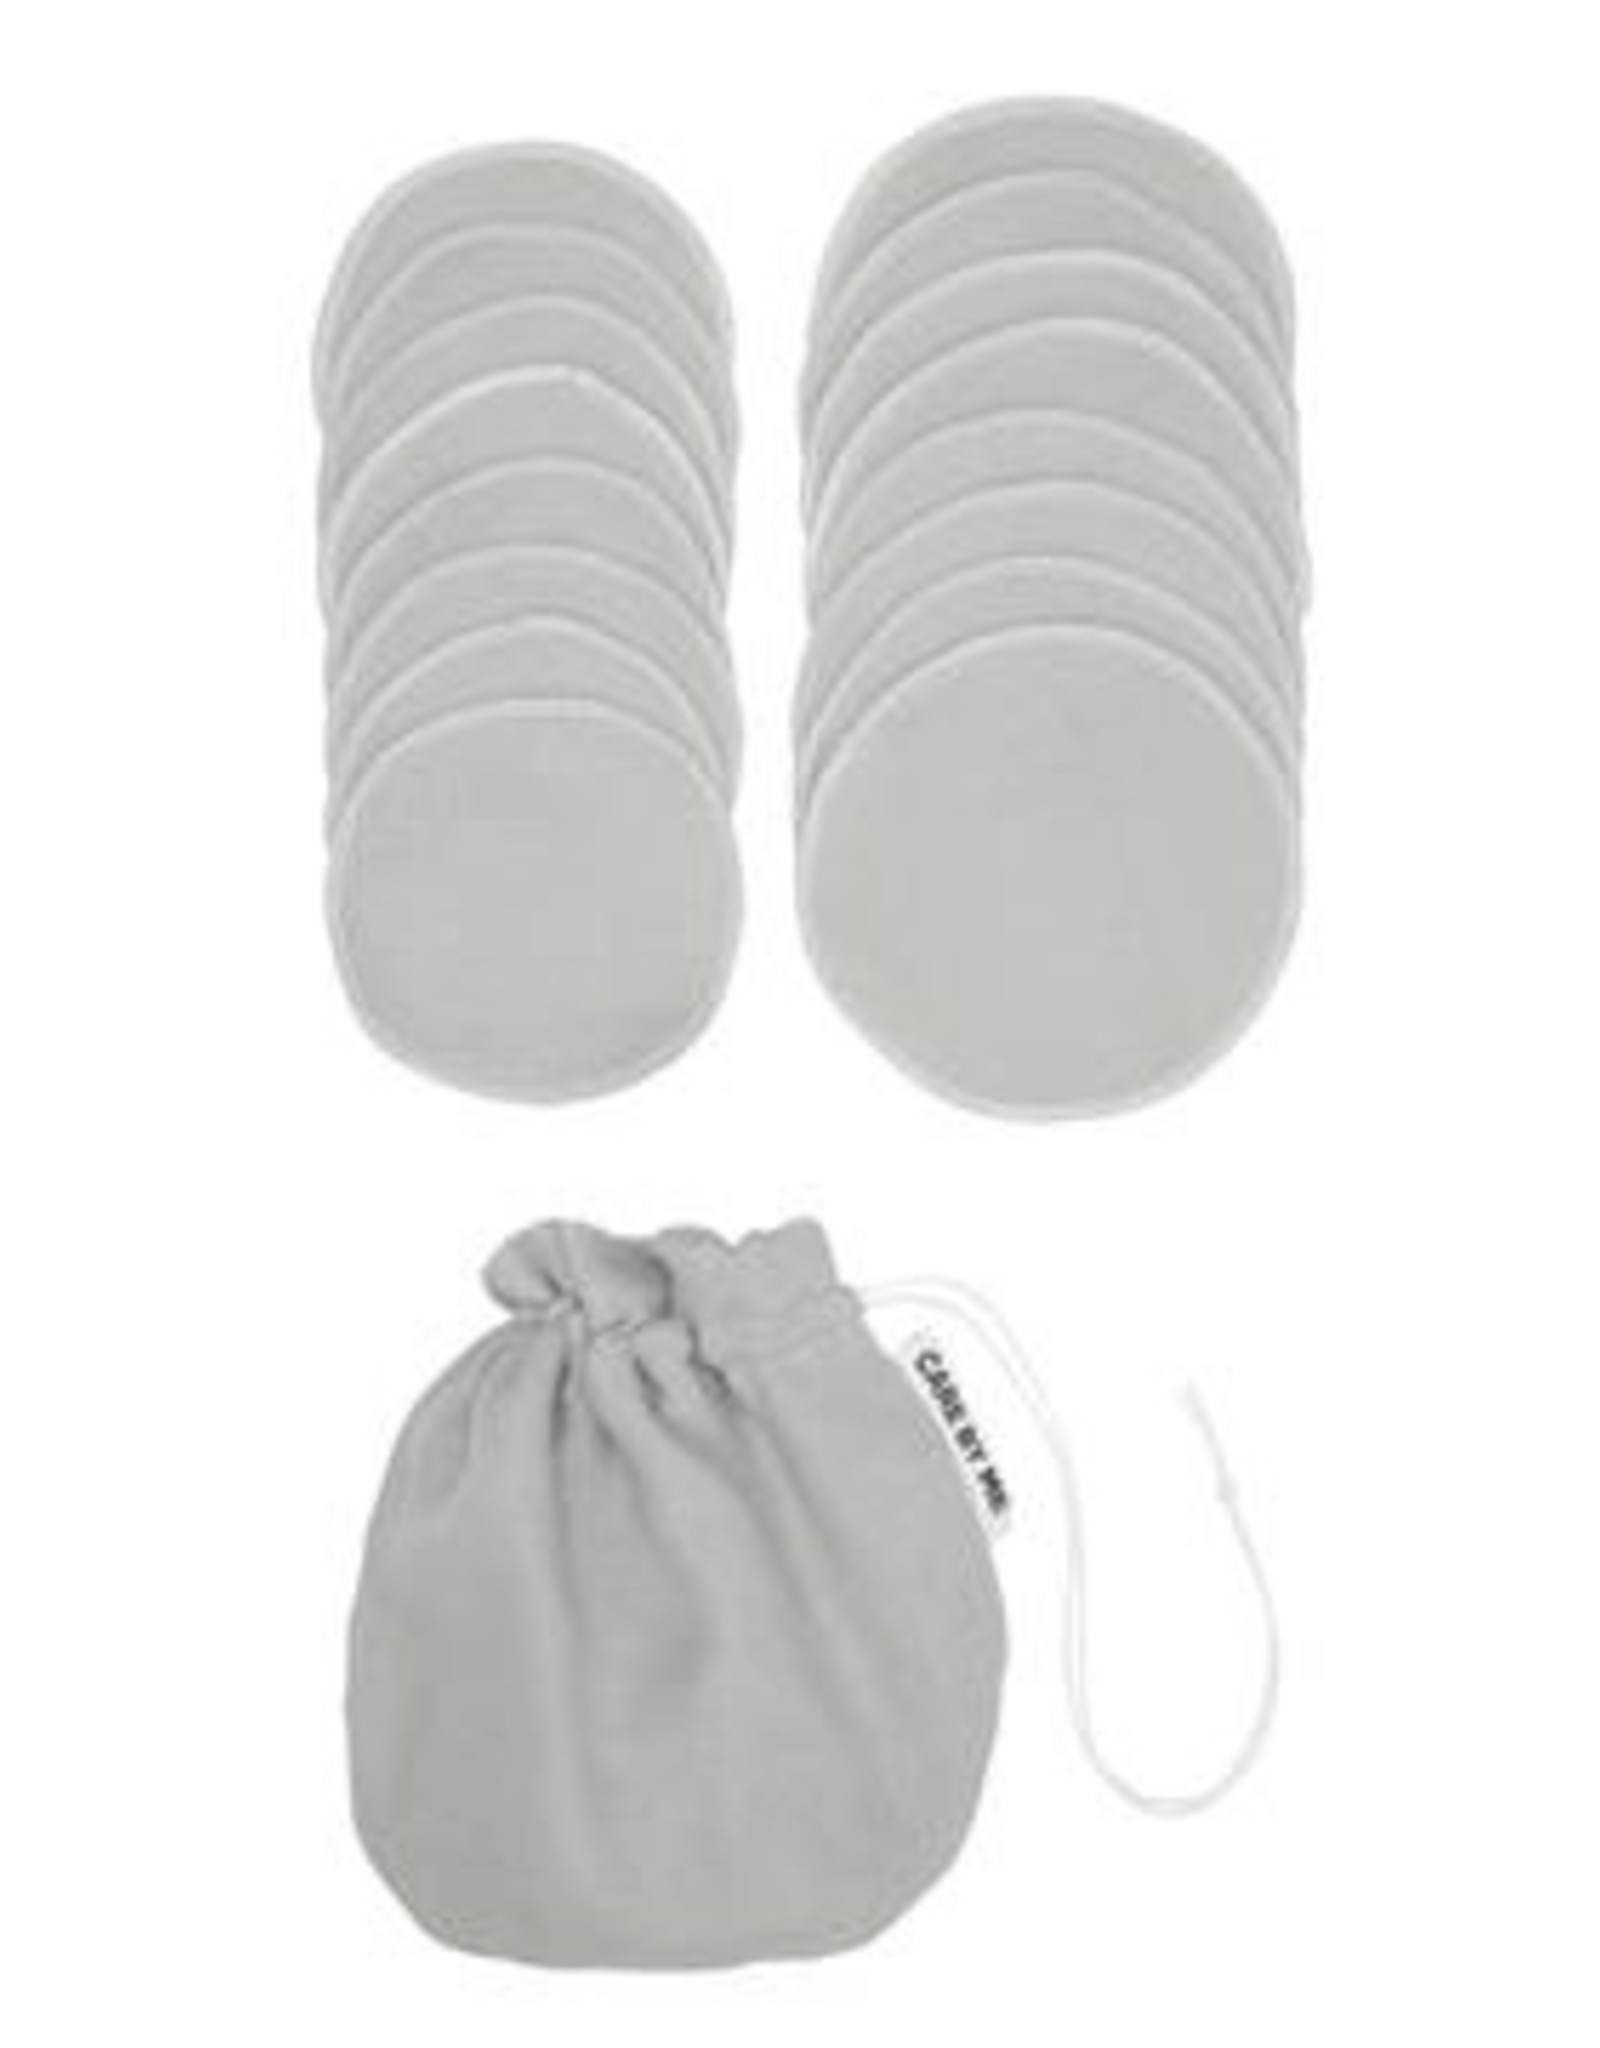 CARE BY ME USA Pure Pads with Pouch